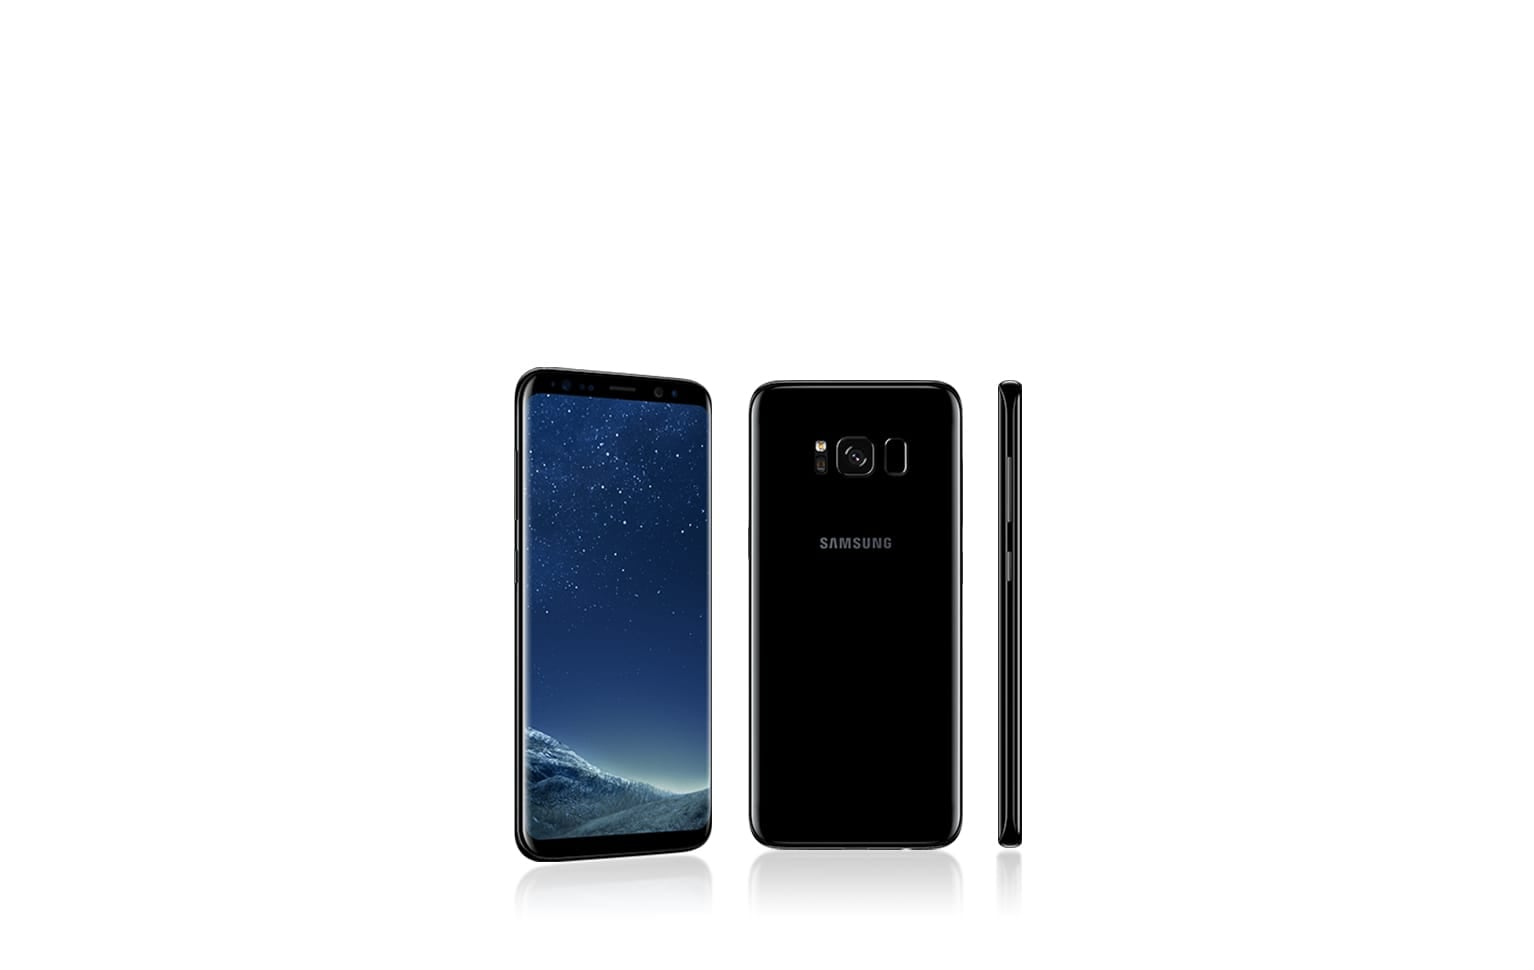 Samsung Galaxy S8 And S8 Samsung Philippines